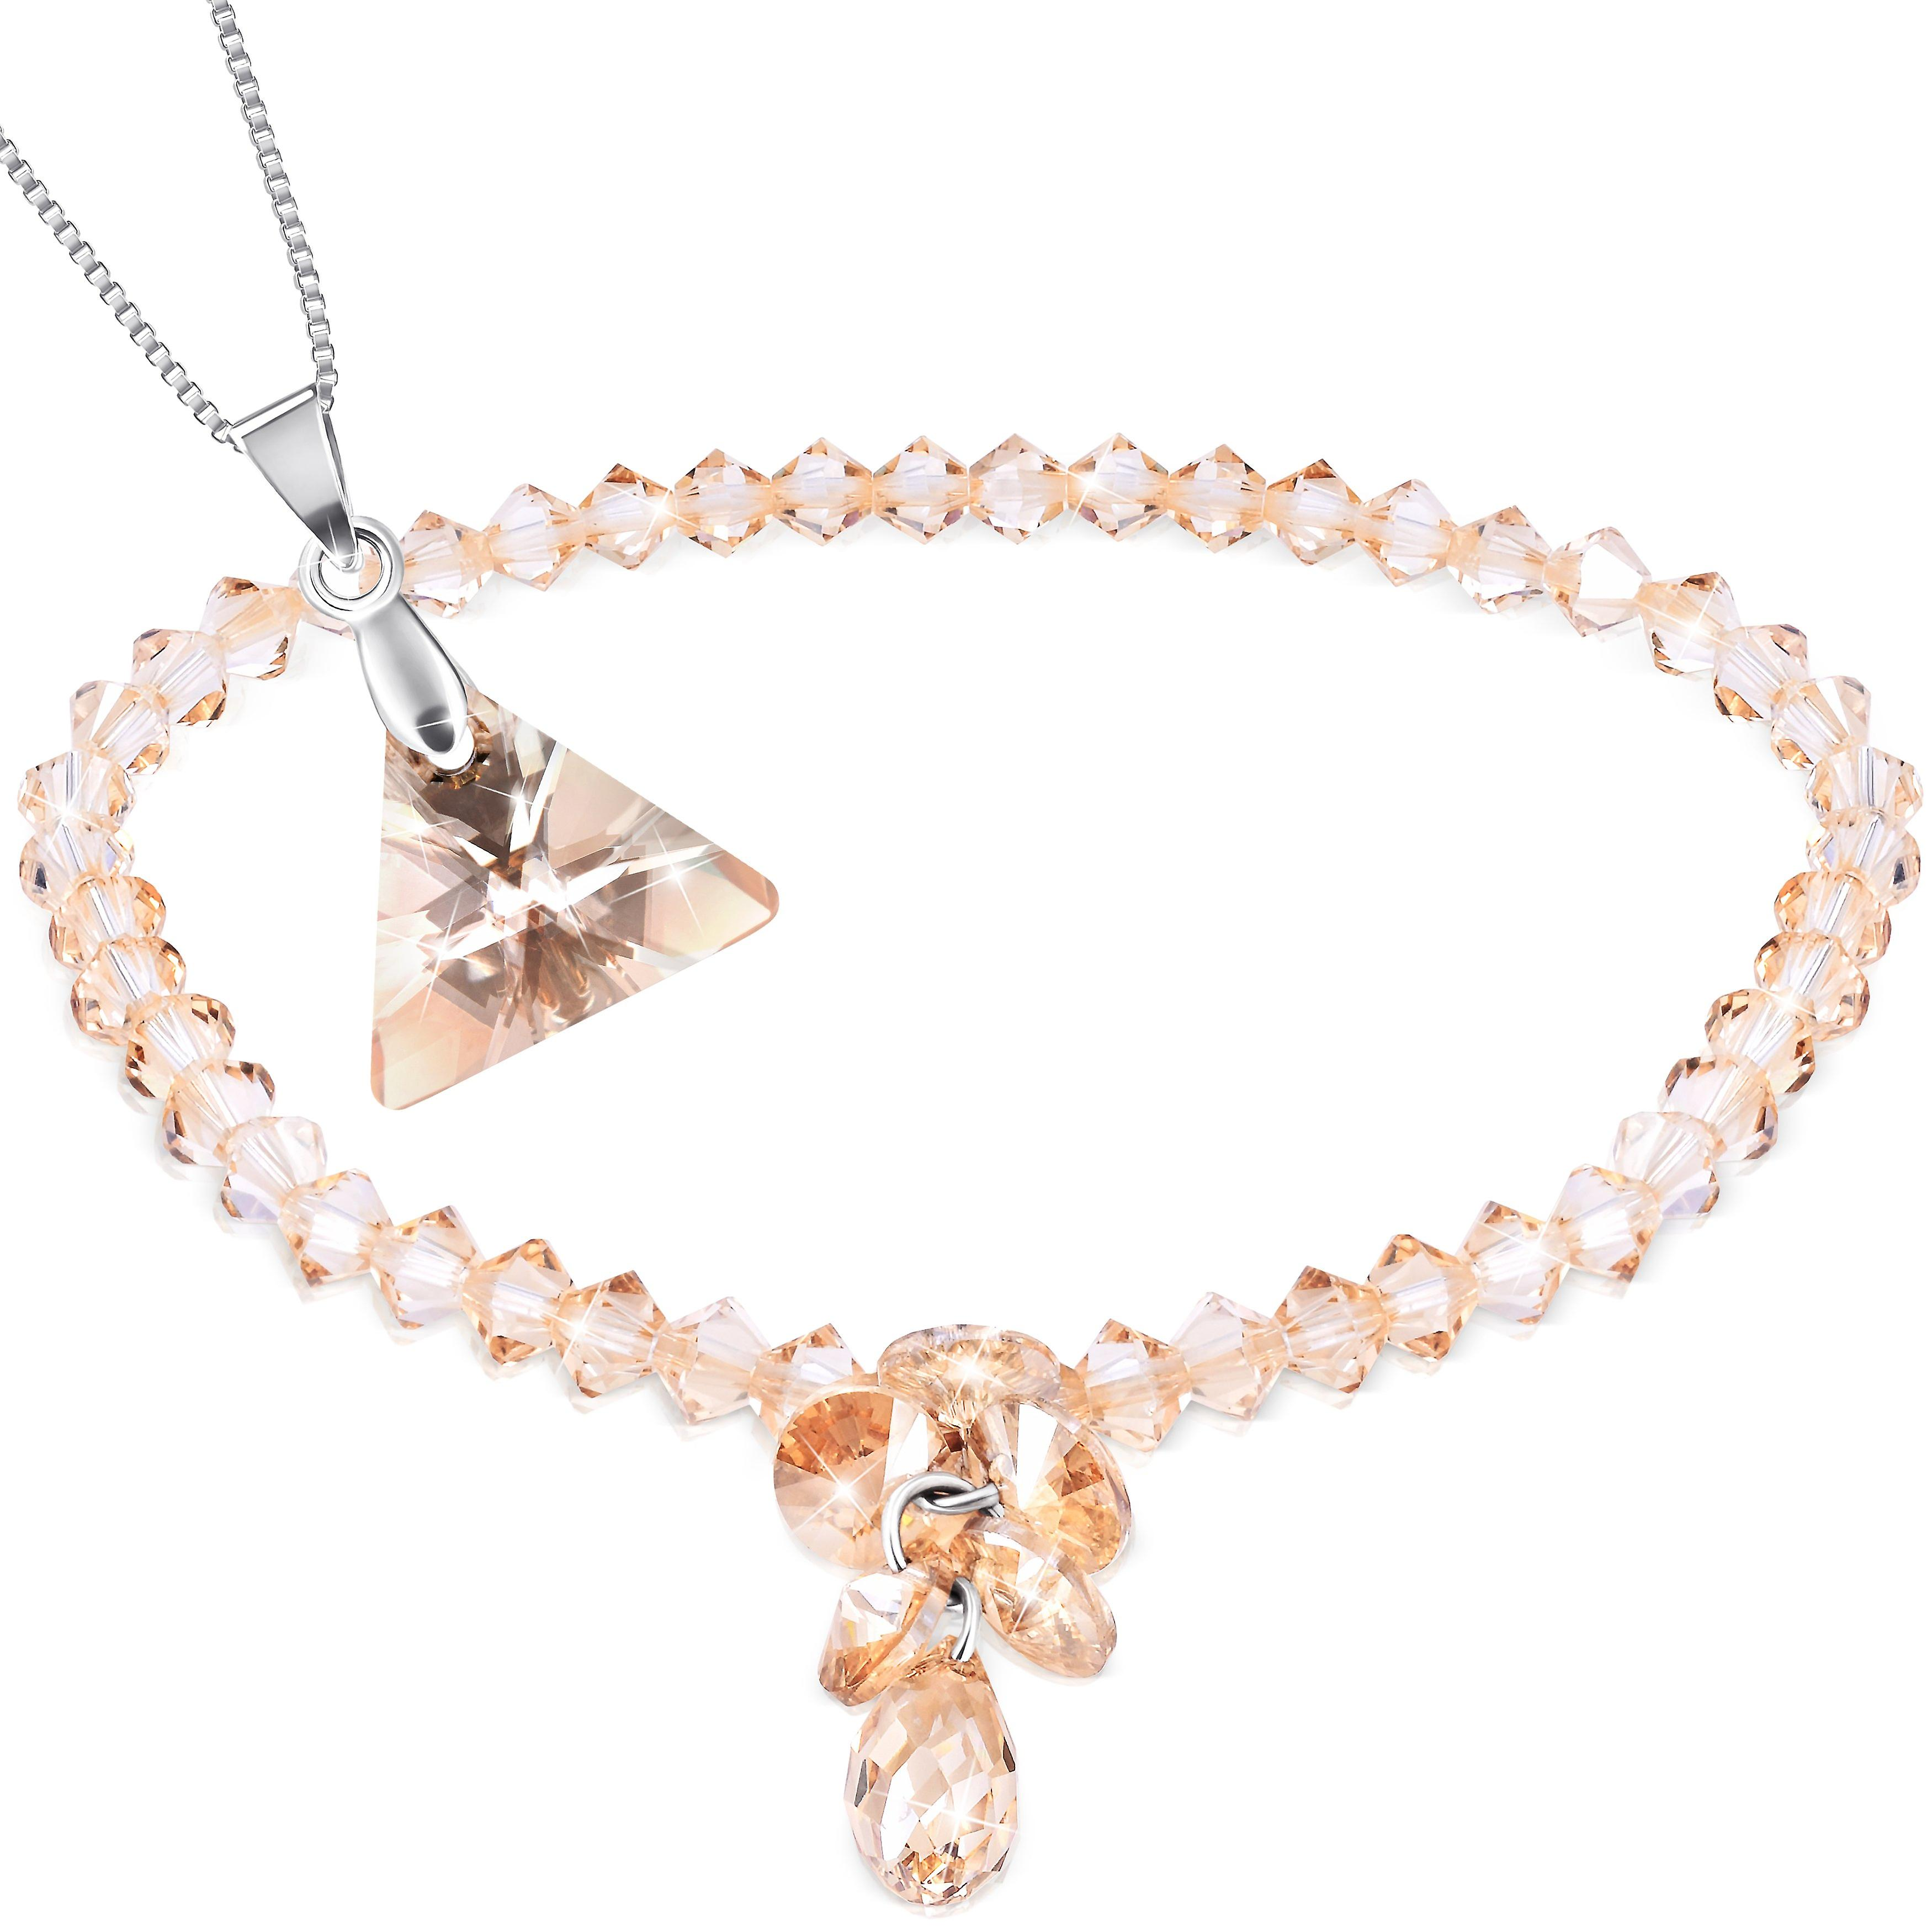 Necklace and bracelet with swarovski crystal. rhodium plated. by 2splendid. 2 for 1. gift box included. bnqz029